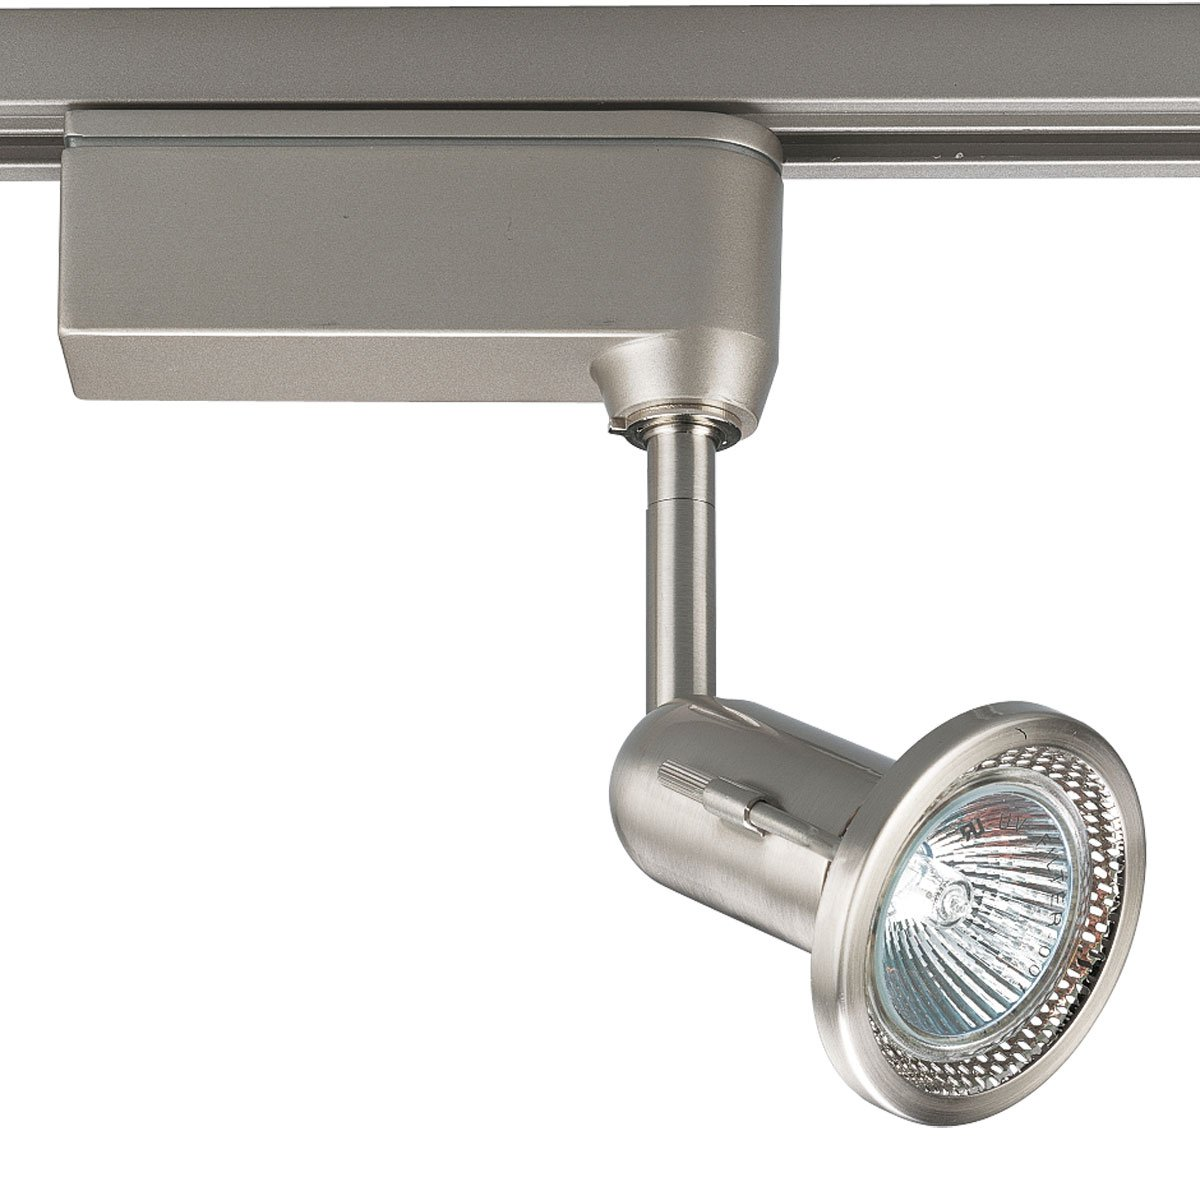 Progress Lighting P6104-09 12 Volt Low Voltage MR16 Fixed Gimbal Track Head, Brushed Nickel